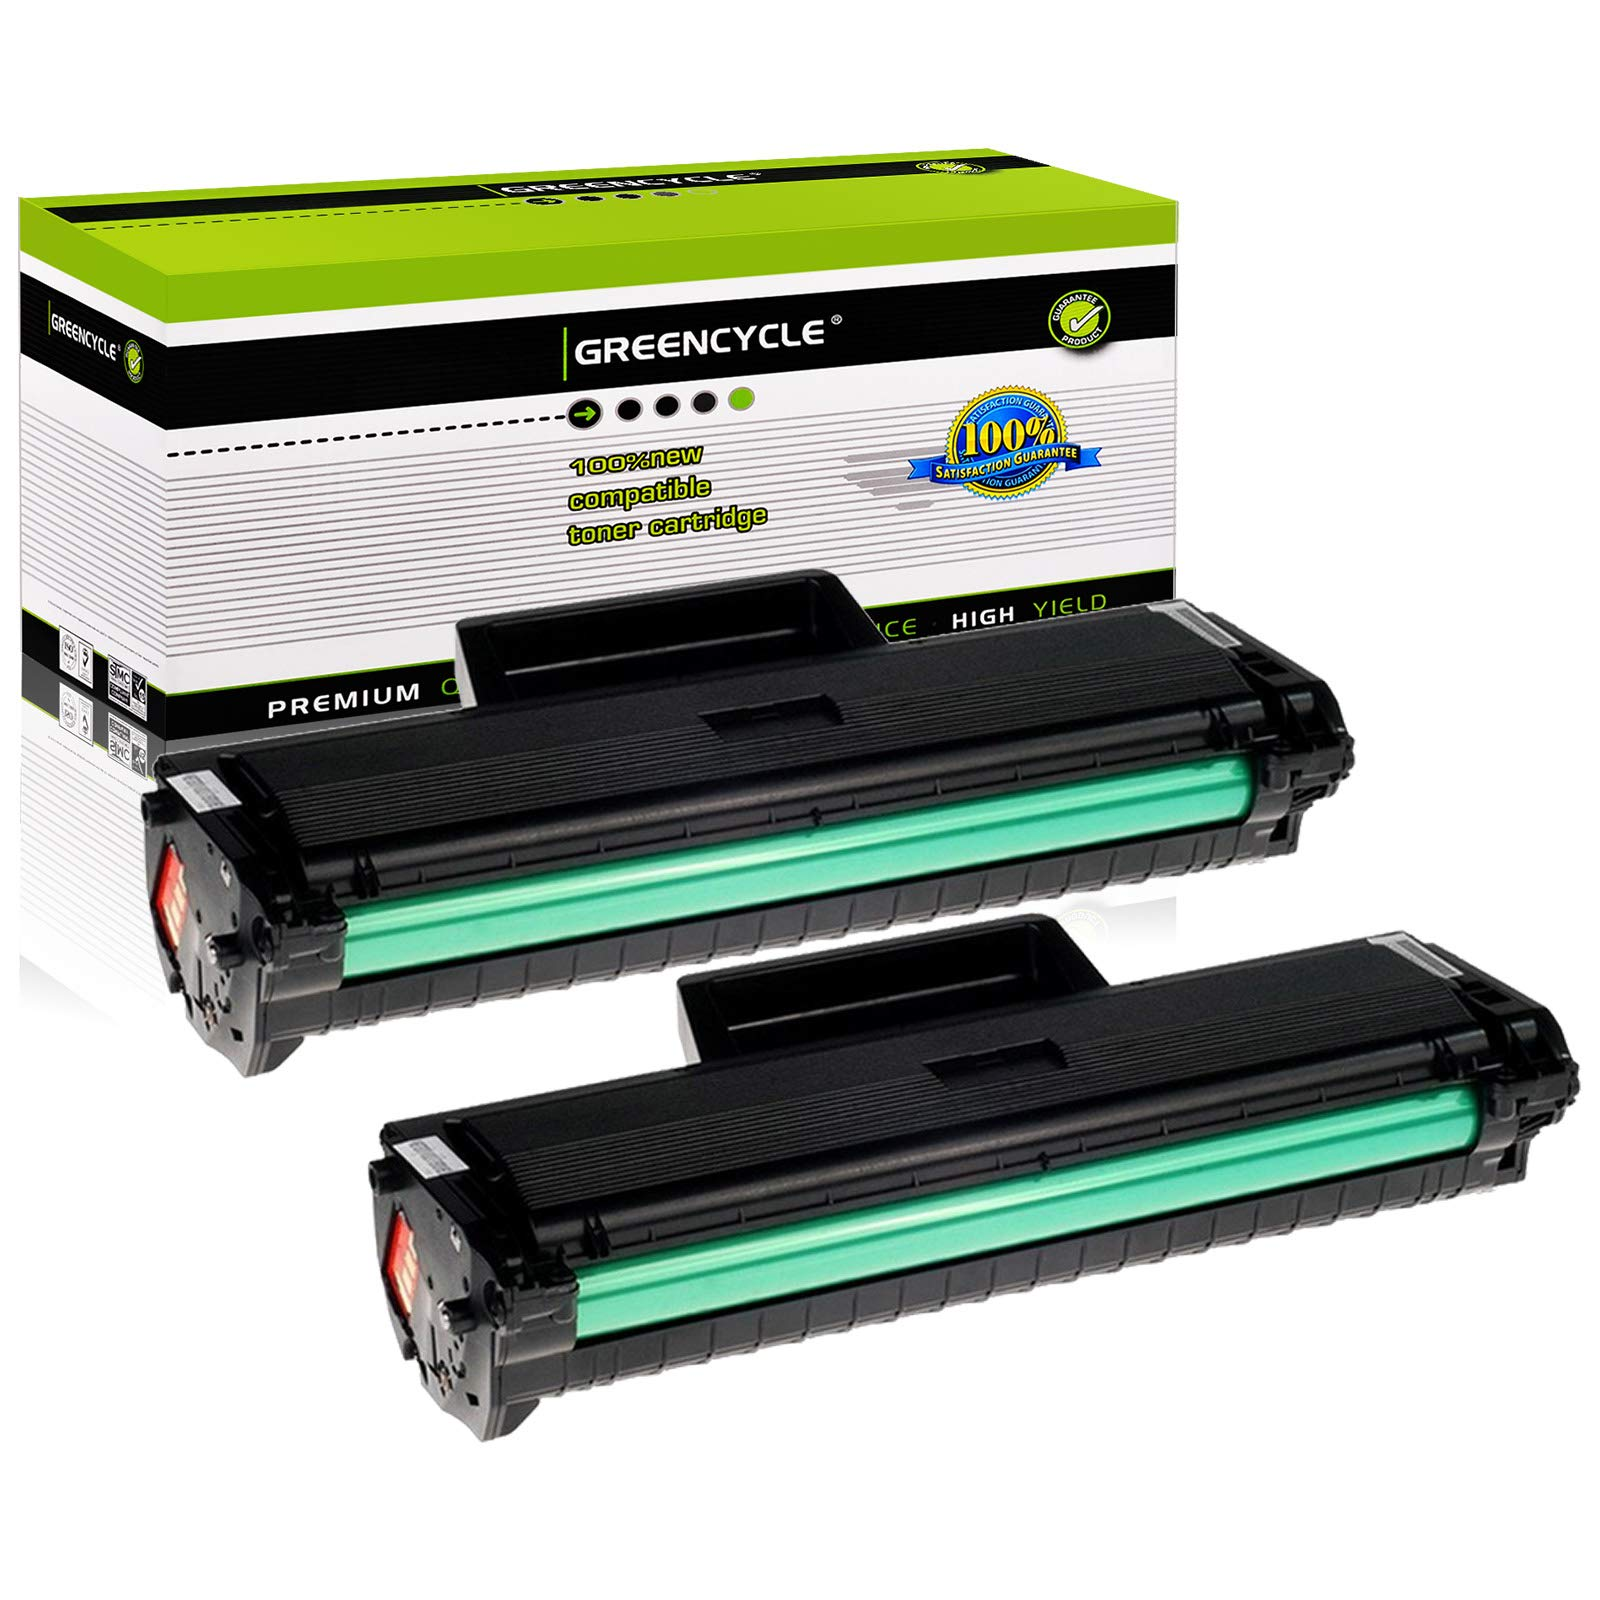 GREENCYCLE Compatible Toner Cartridges Replacement for Samsung MLT-D104S MLT-D104L High Yield for Ml1665 Ml1660 Ml1865w Printer (Black,2 Pack)